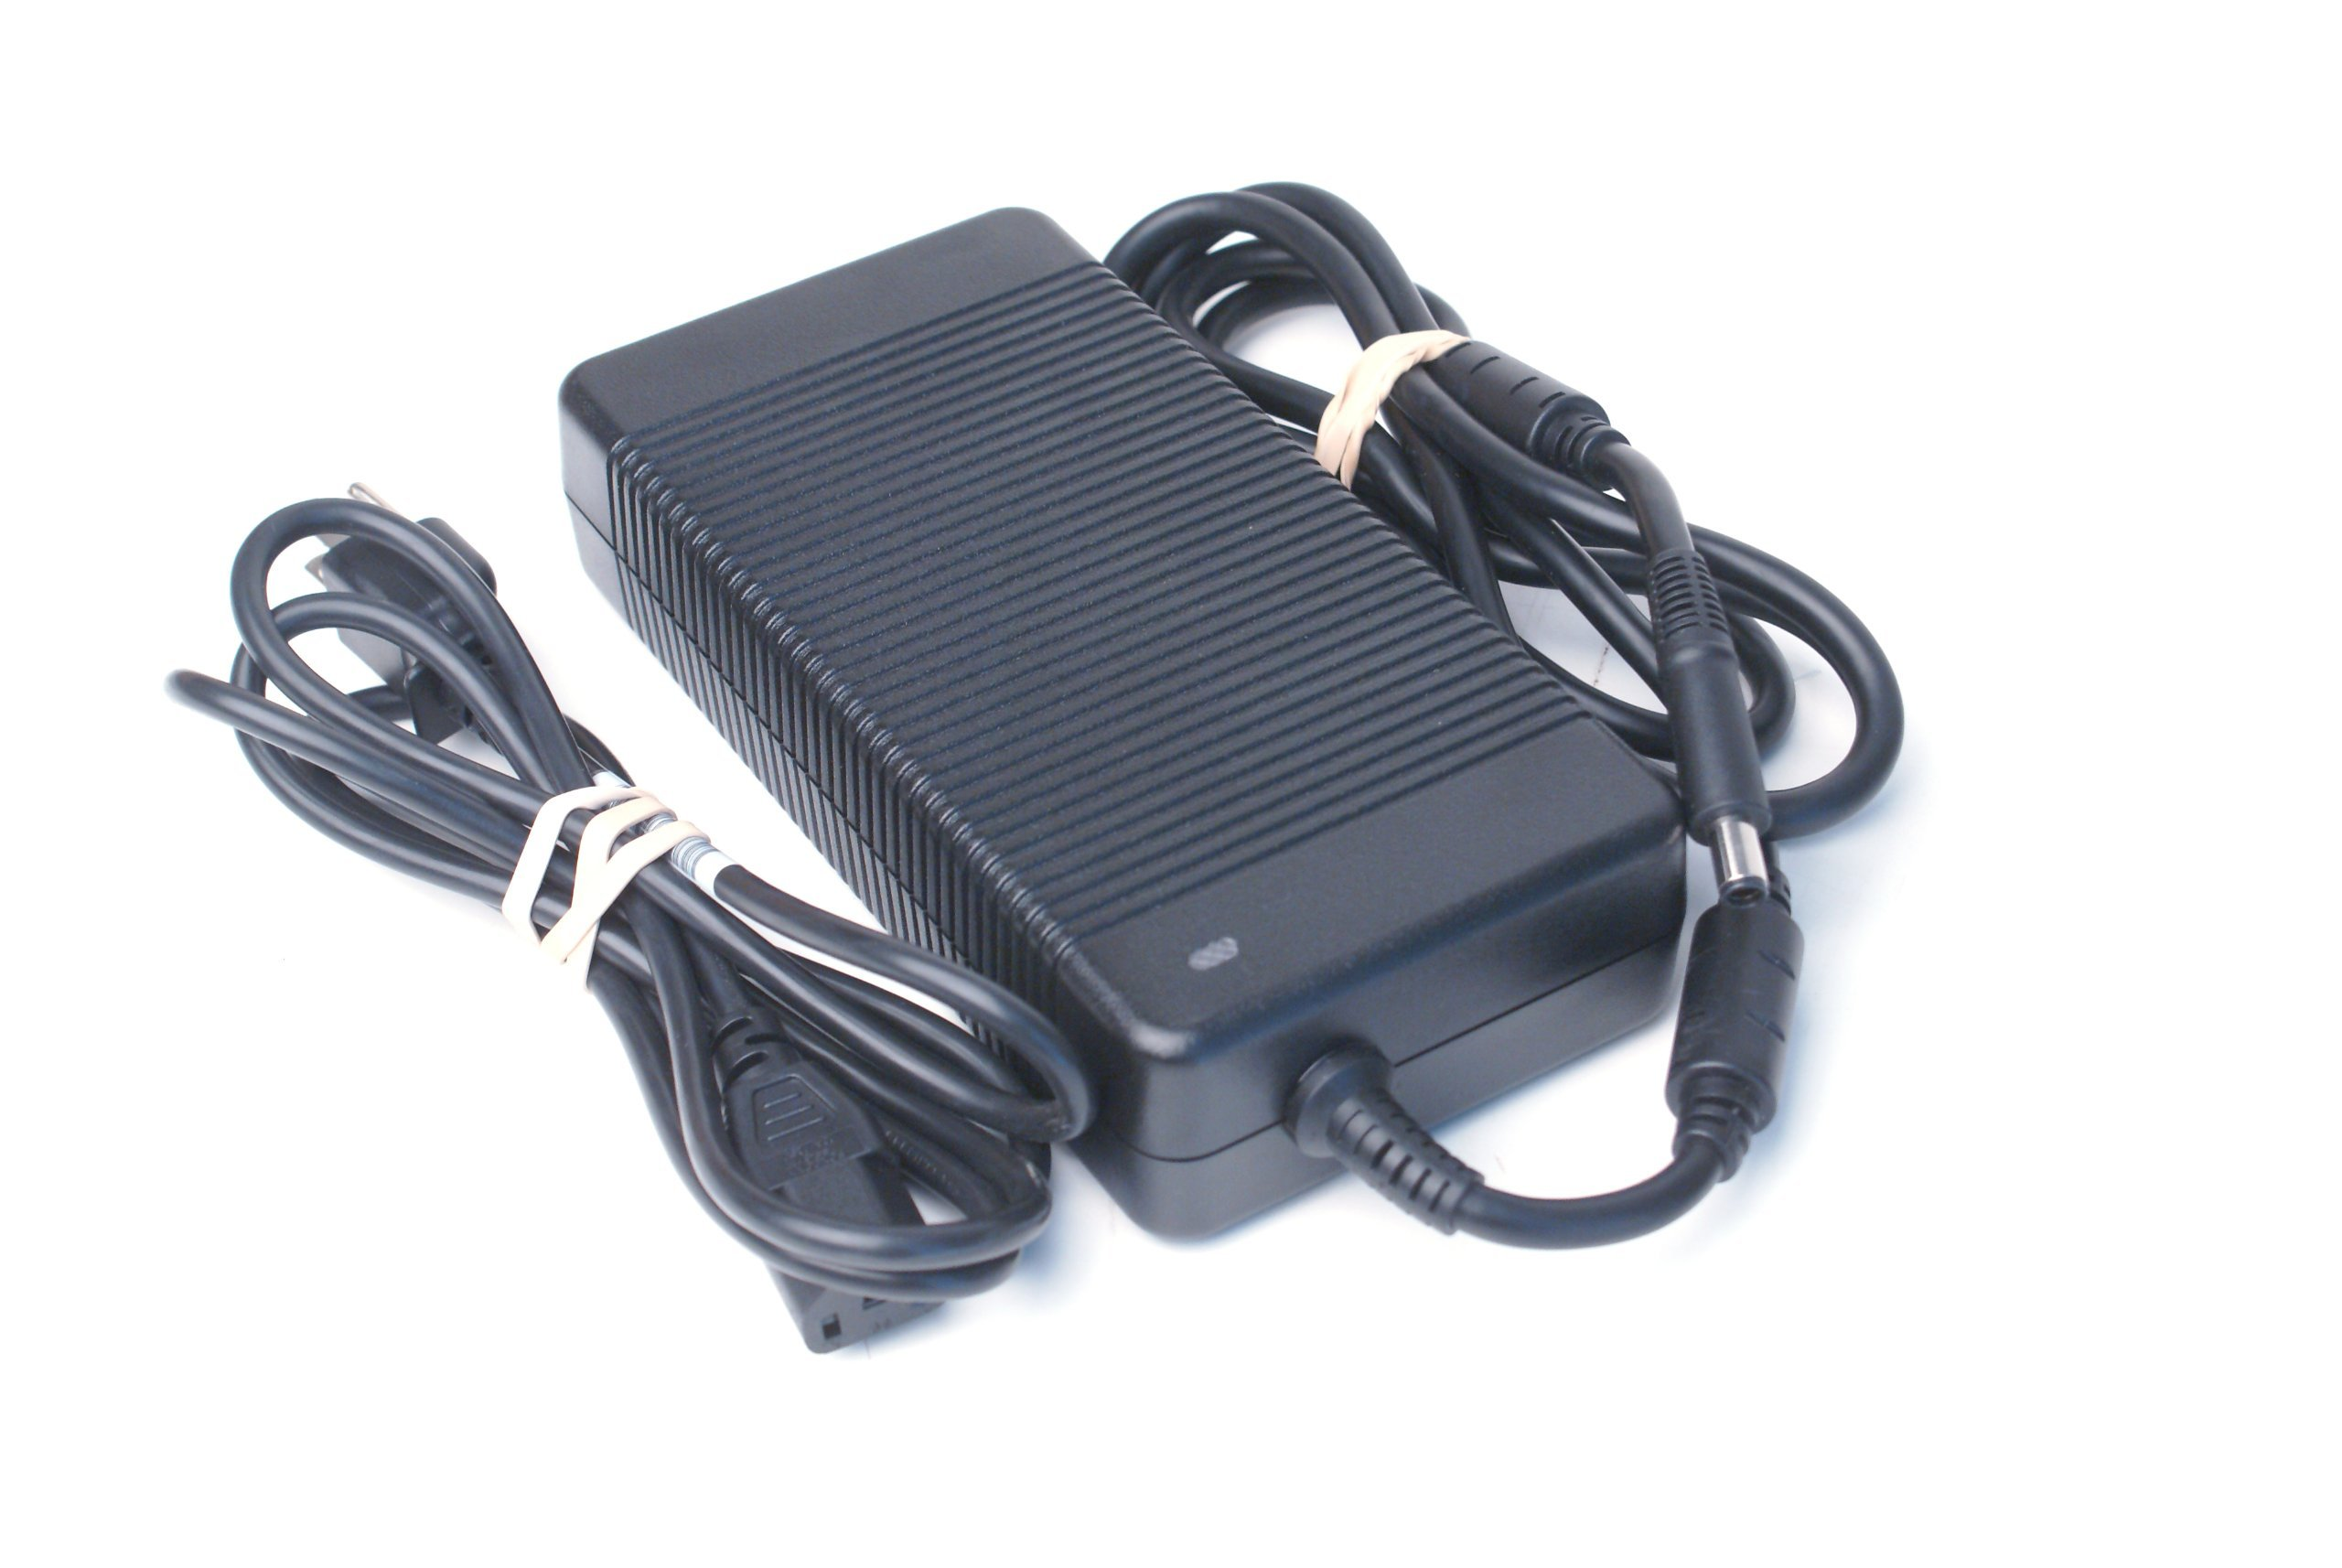 Dell 330W AC Adapter with 6 Foot Power Cord (DA330PM111, XM3C3, ADP-330AB B, 5X3NX, 332-1432, Charger, PA) by Dell